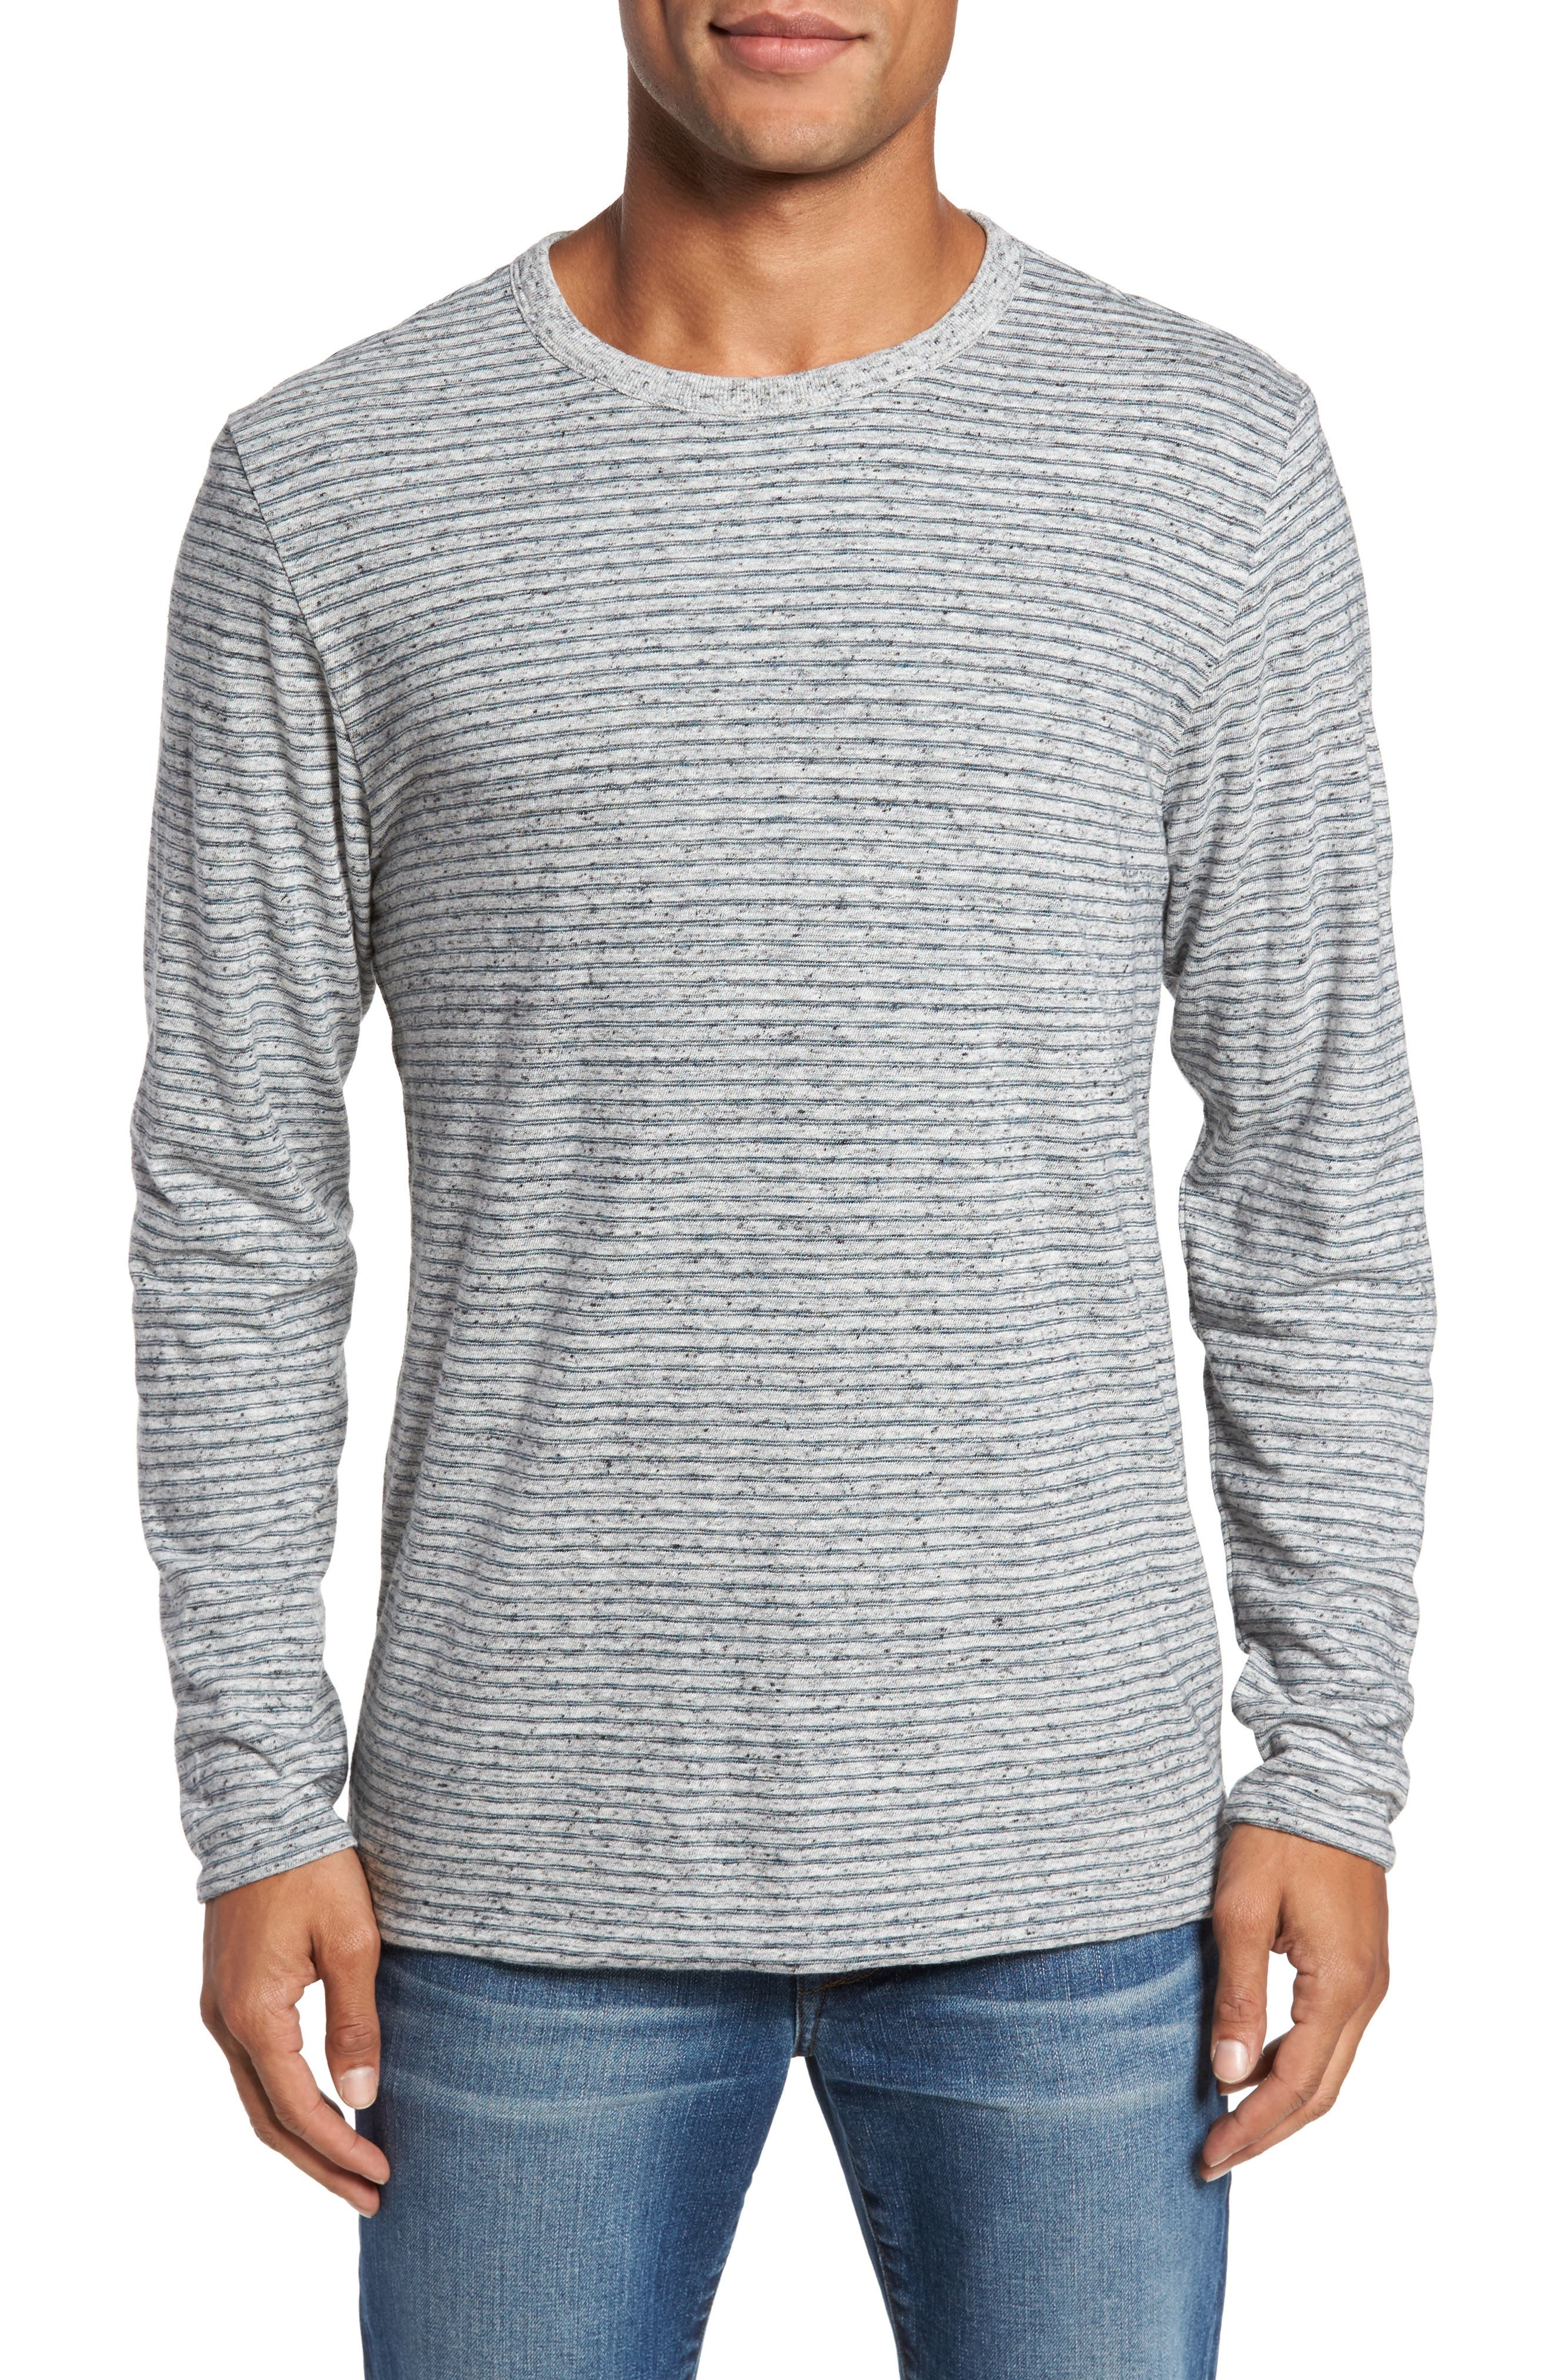 Alternate Image 1 Selected - Faherty Heathered Reversible Long Sleeve Crewneck T-Shirt